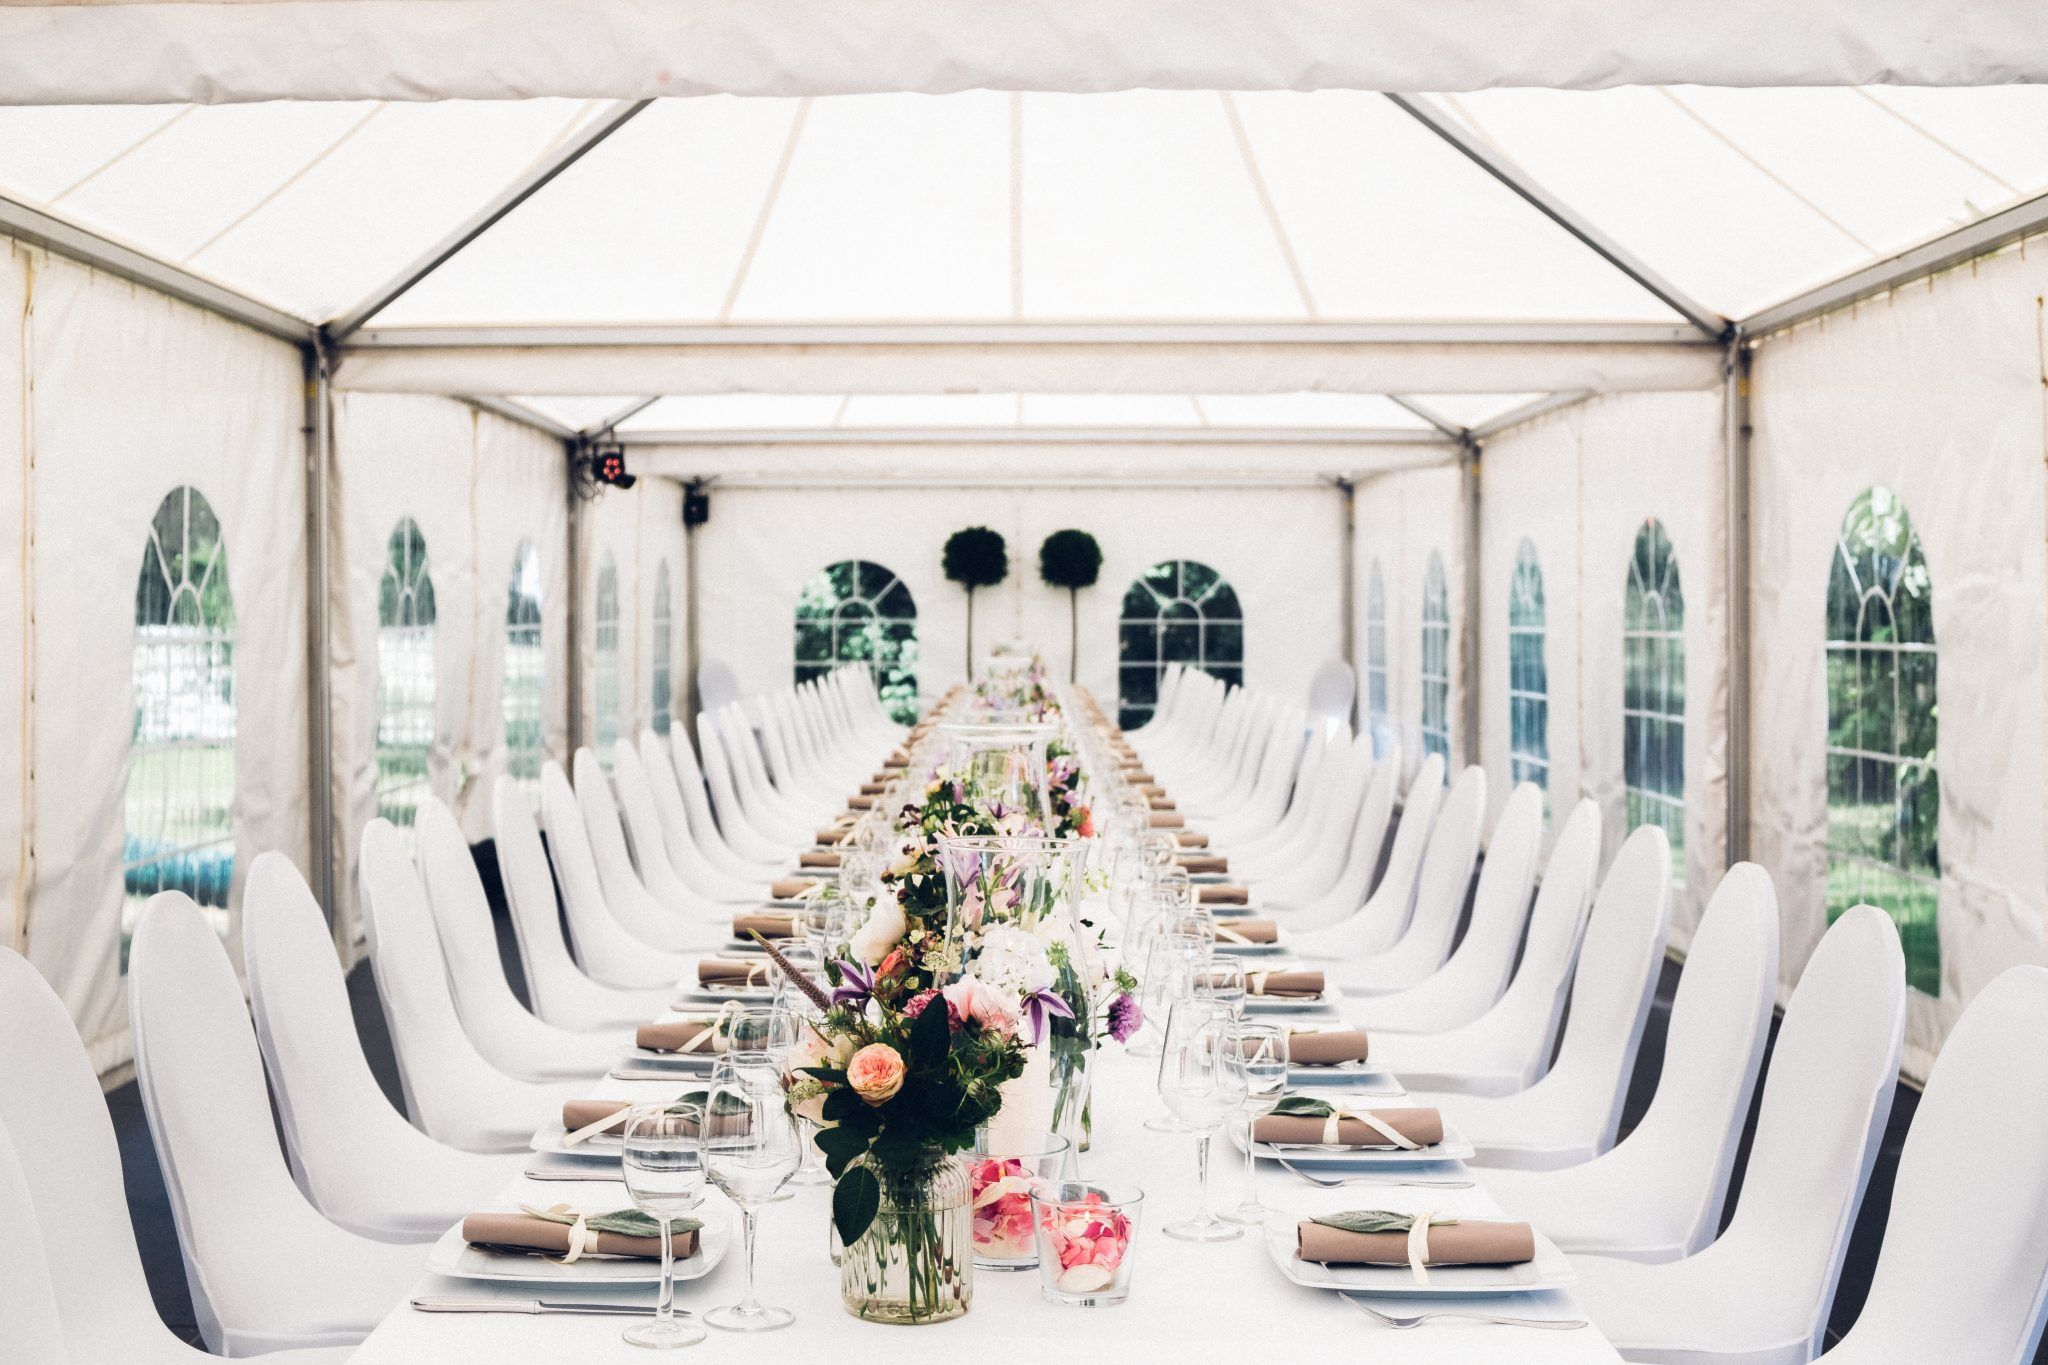 event seating layout with white tables and chairs